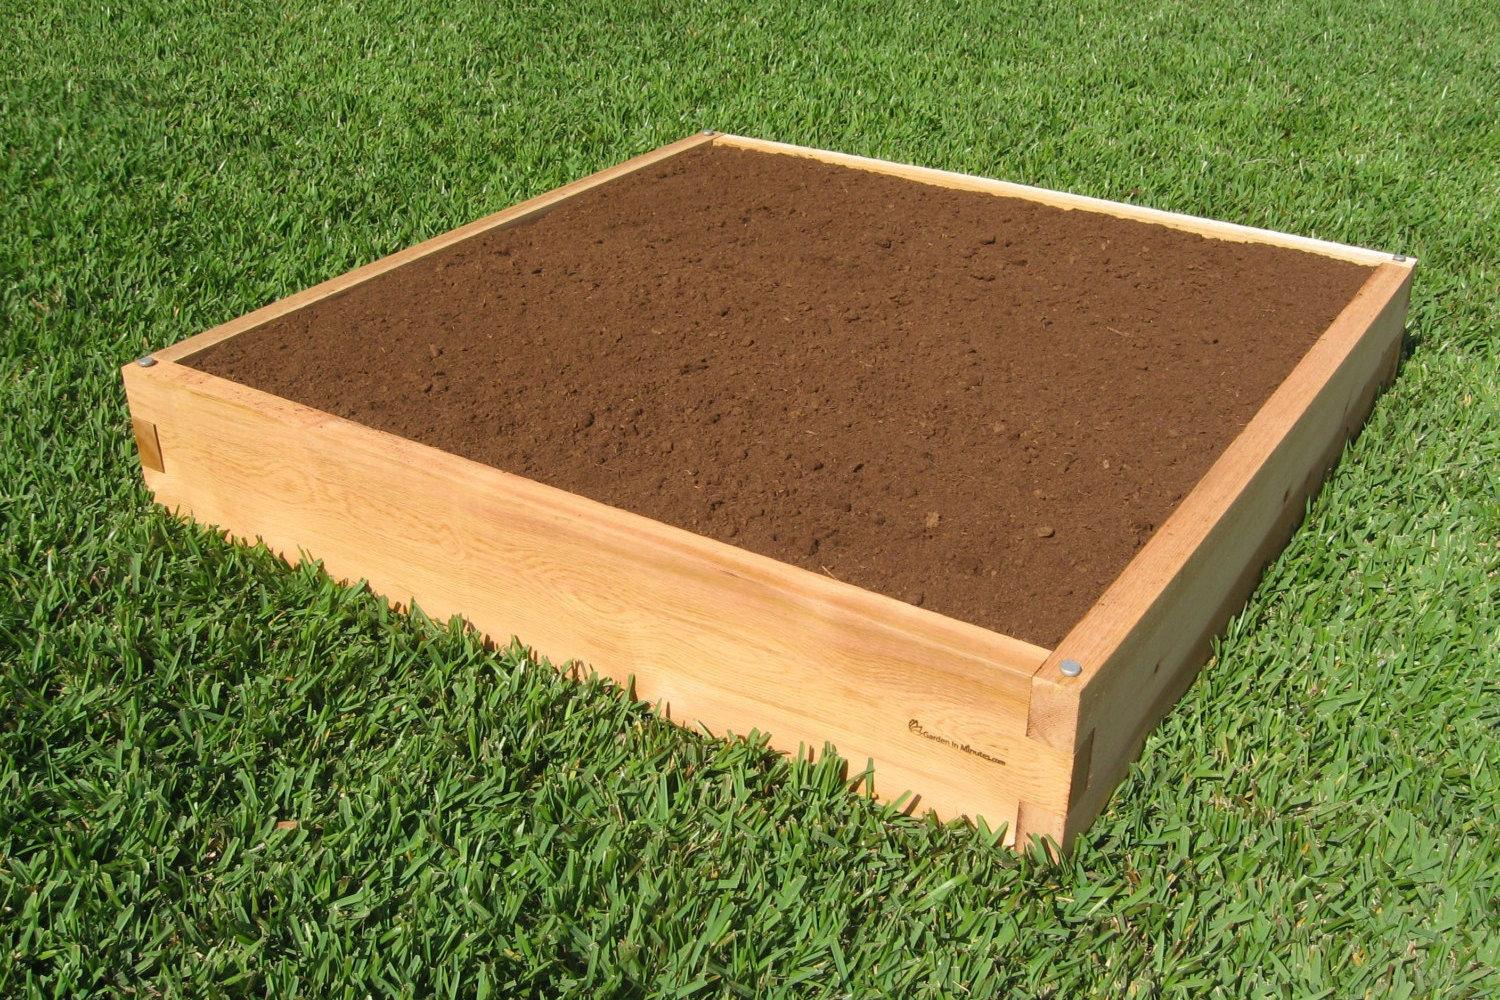 Cedar Raised Garden Beds 28 Images Raised Garden Beds Ideas For Growing Images 5966684185